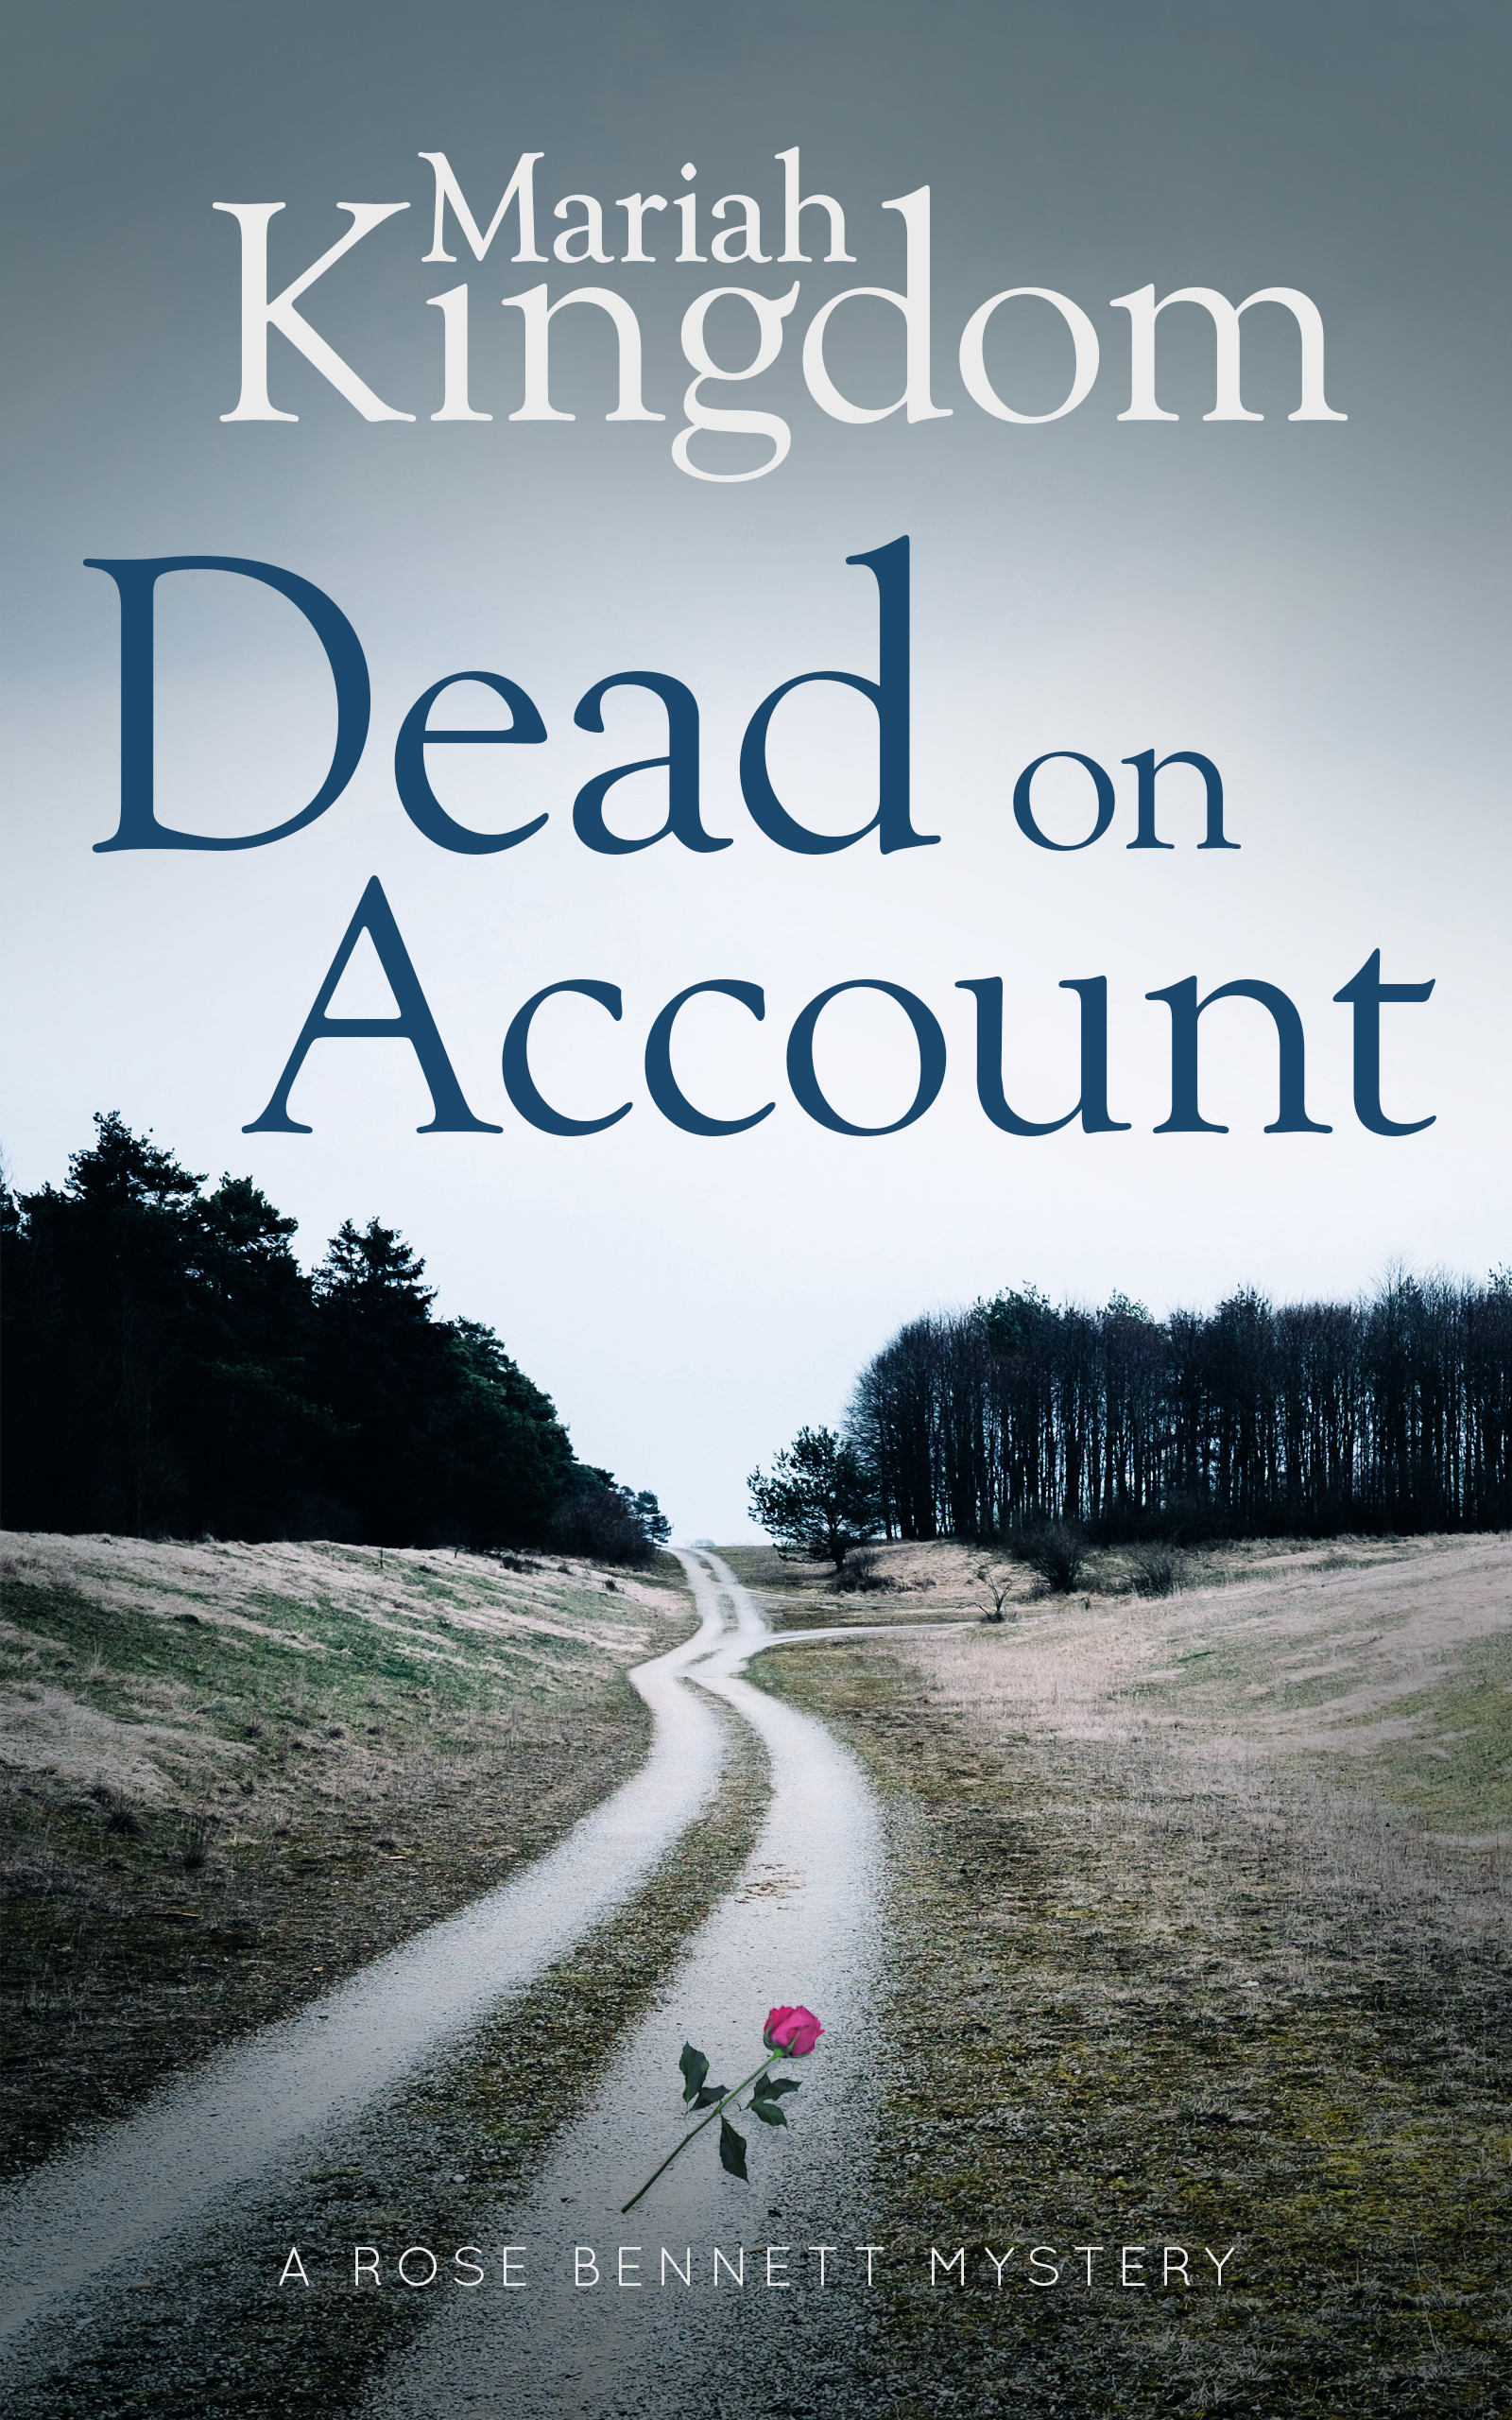 Dead on Account (A Rose Bennett Mystery #1)